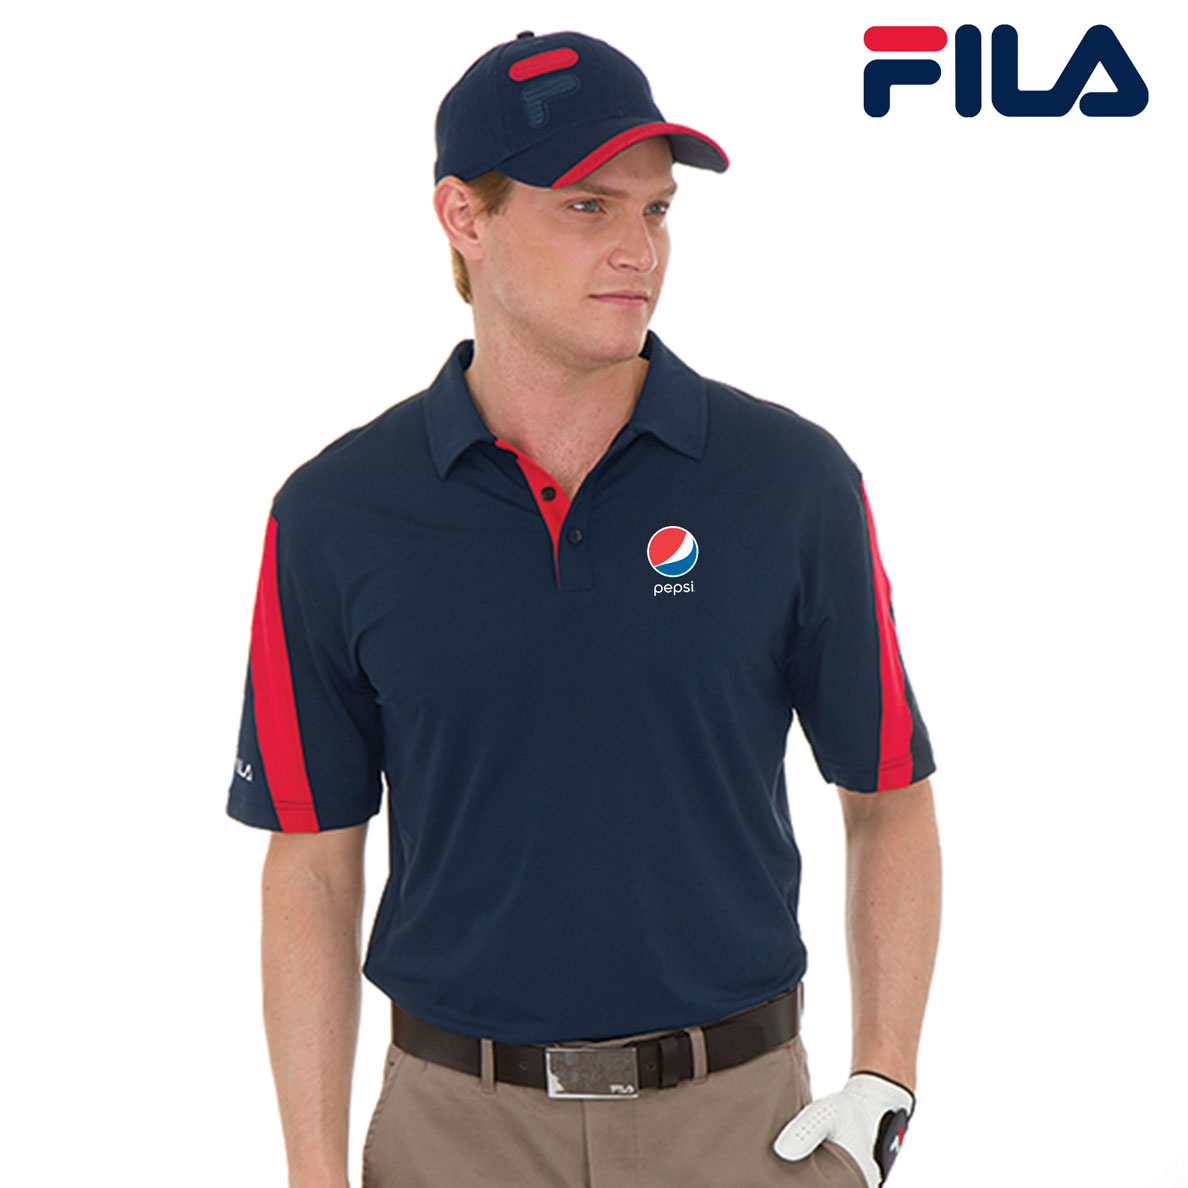 FILA Men's Scottsdale Polo - Pepsi